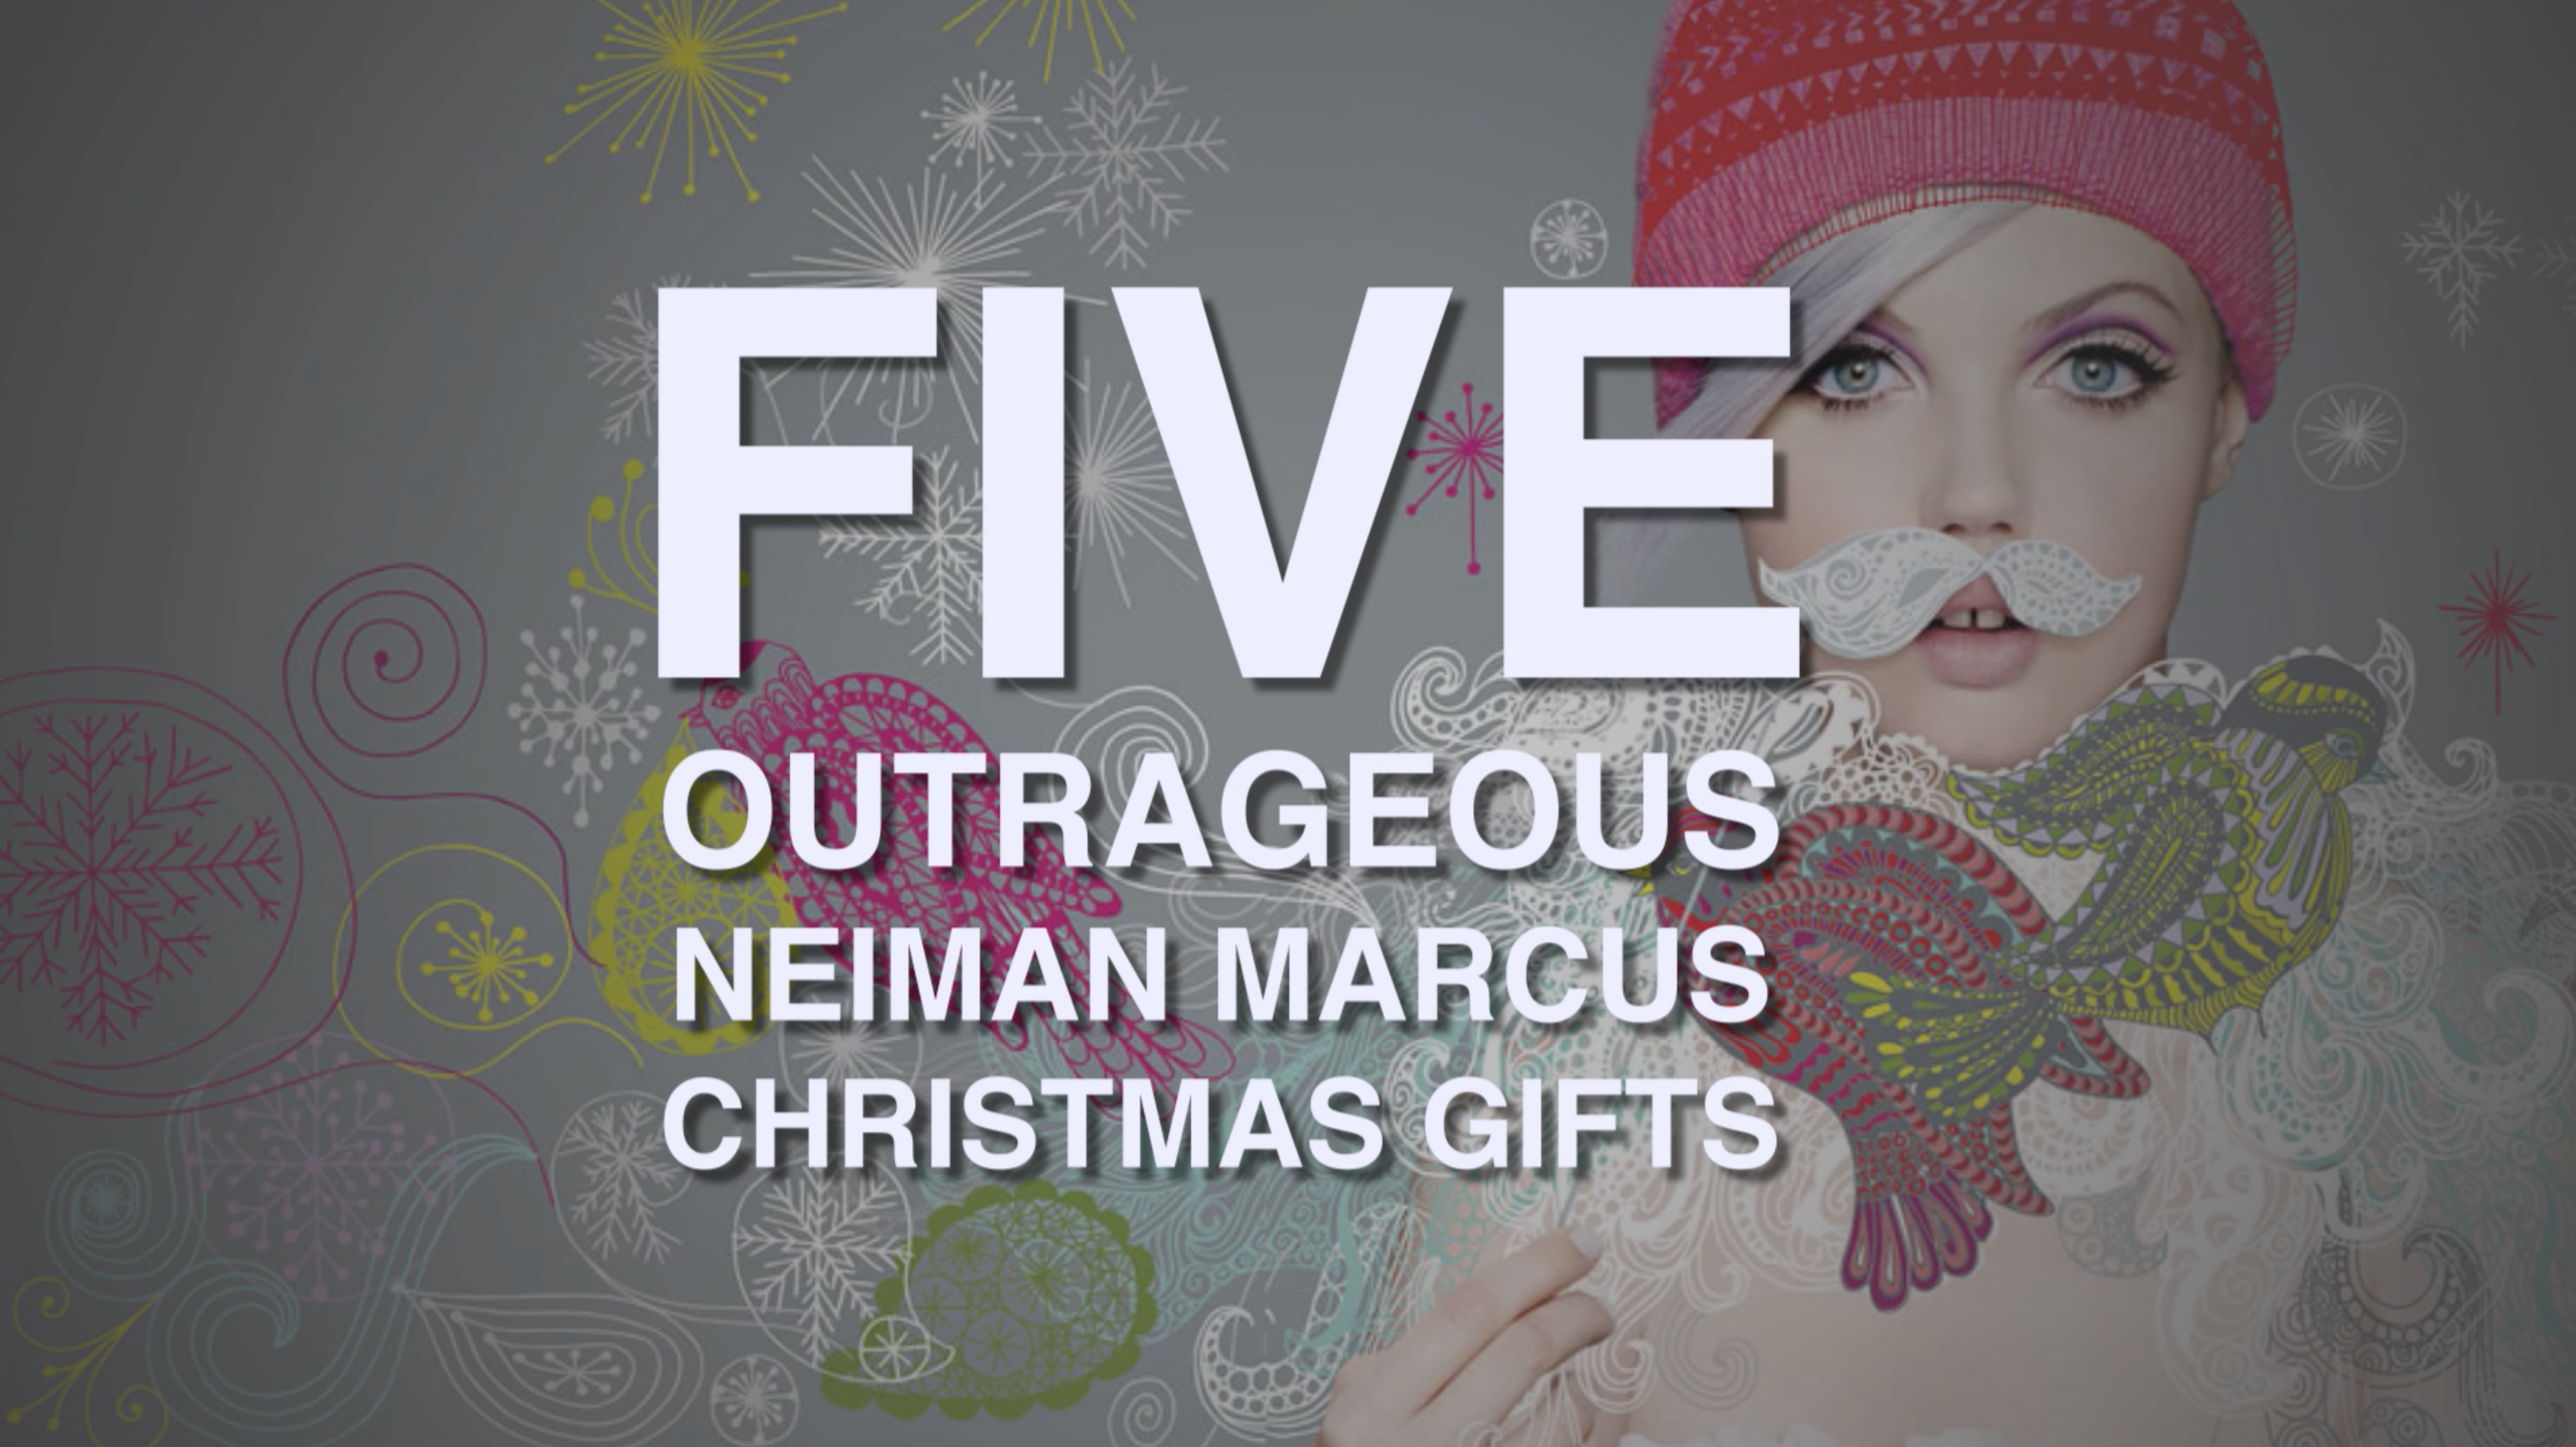 Five Outrageous Gifts From The Neiman Marcus Christmas